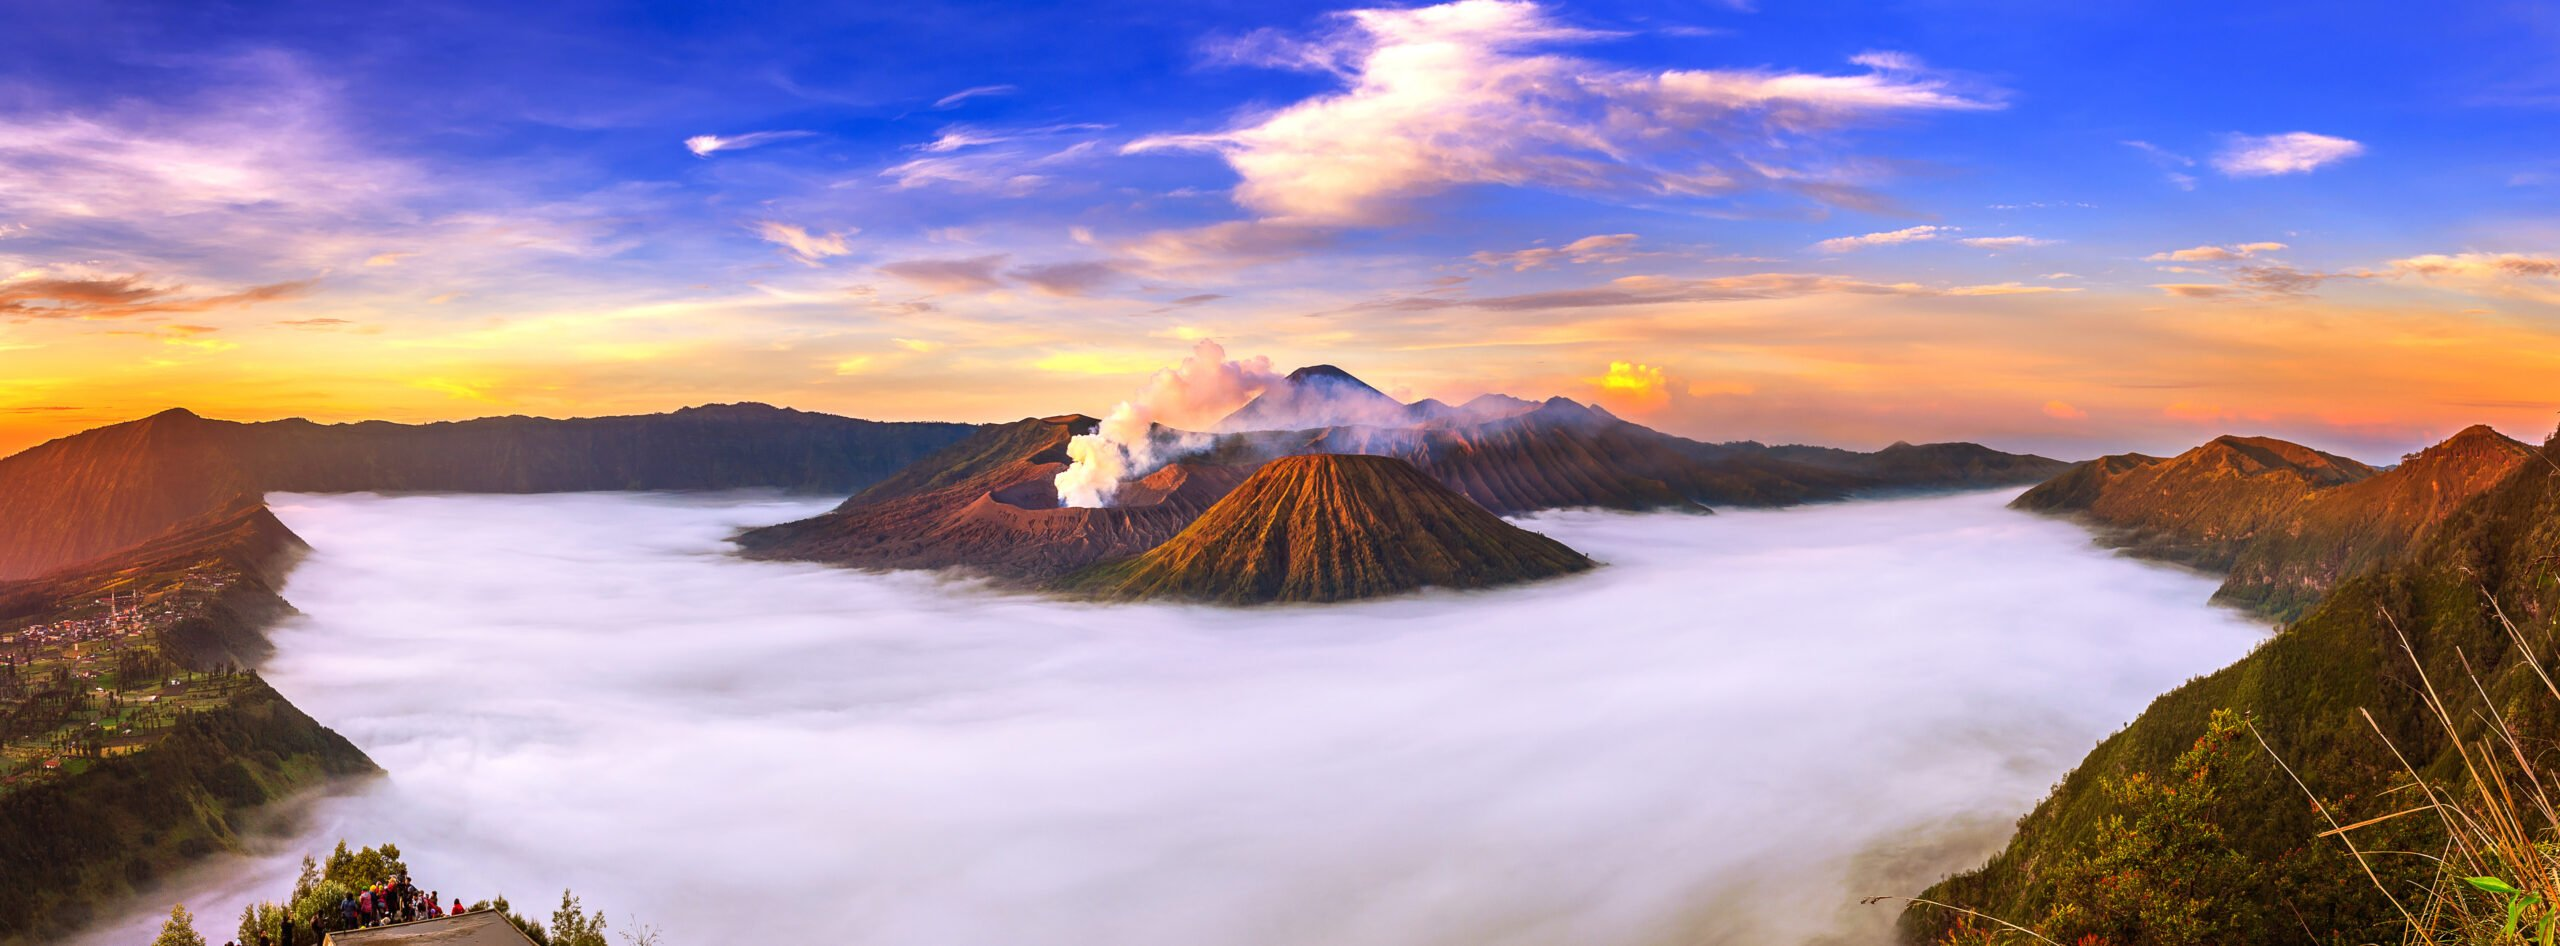 Enjoy The Breathtaking Scene Of Bromo Sunrise In Our Wonders Of East Java 4 Day V.i.p Tour